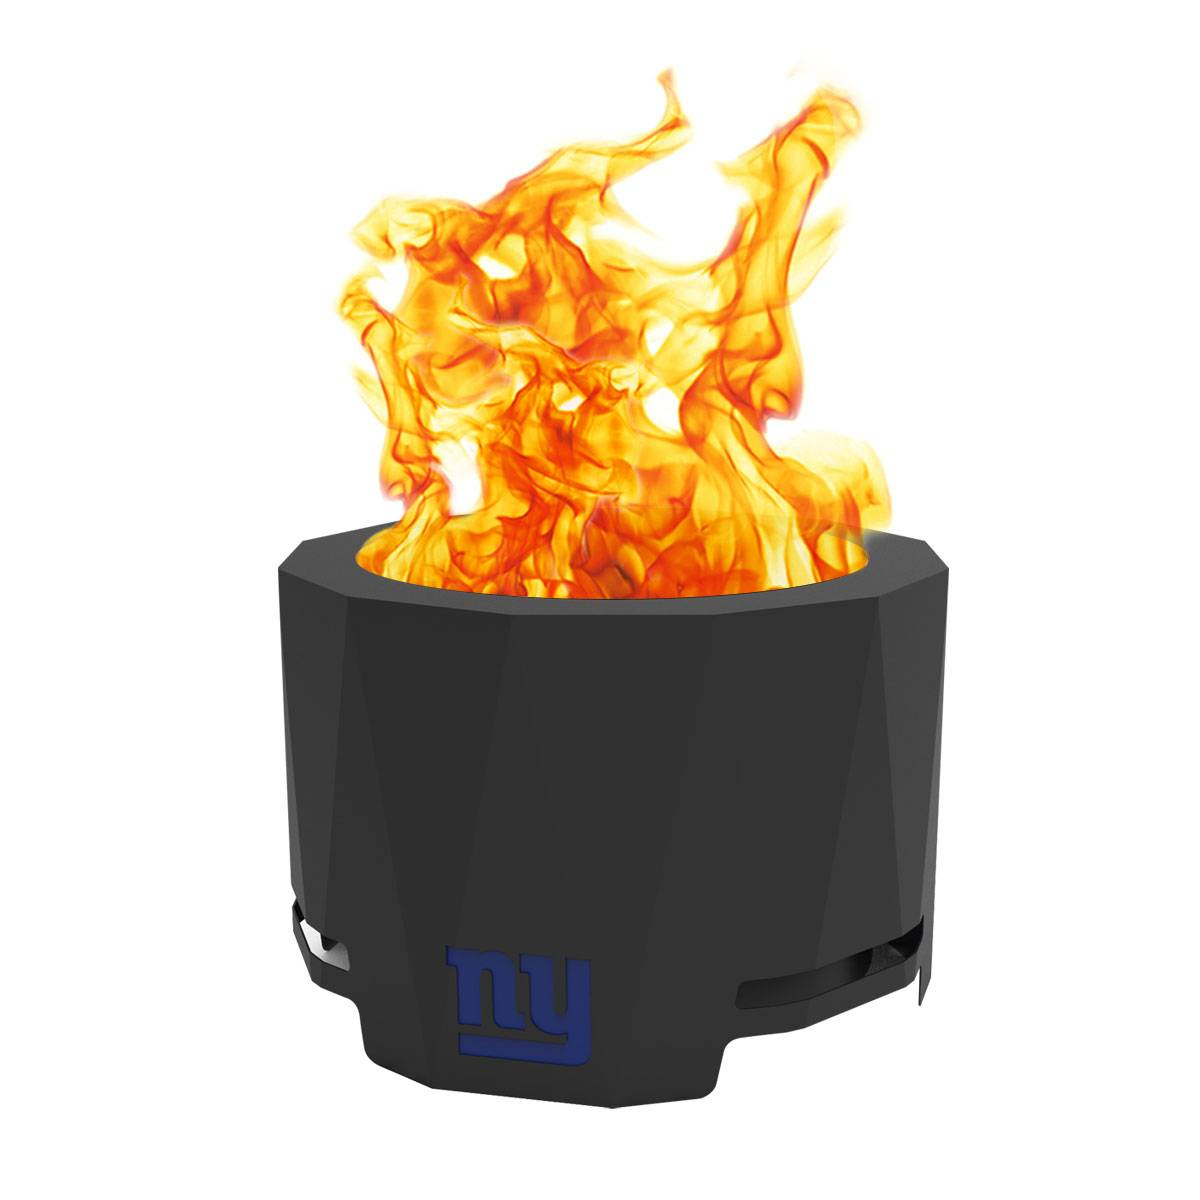 New York Giants The Peak Patio Fire Pit on The Peak Patio Fire Pit id=16020